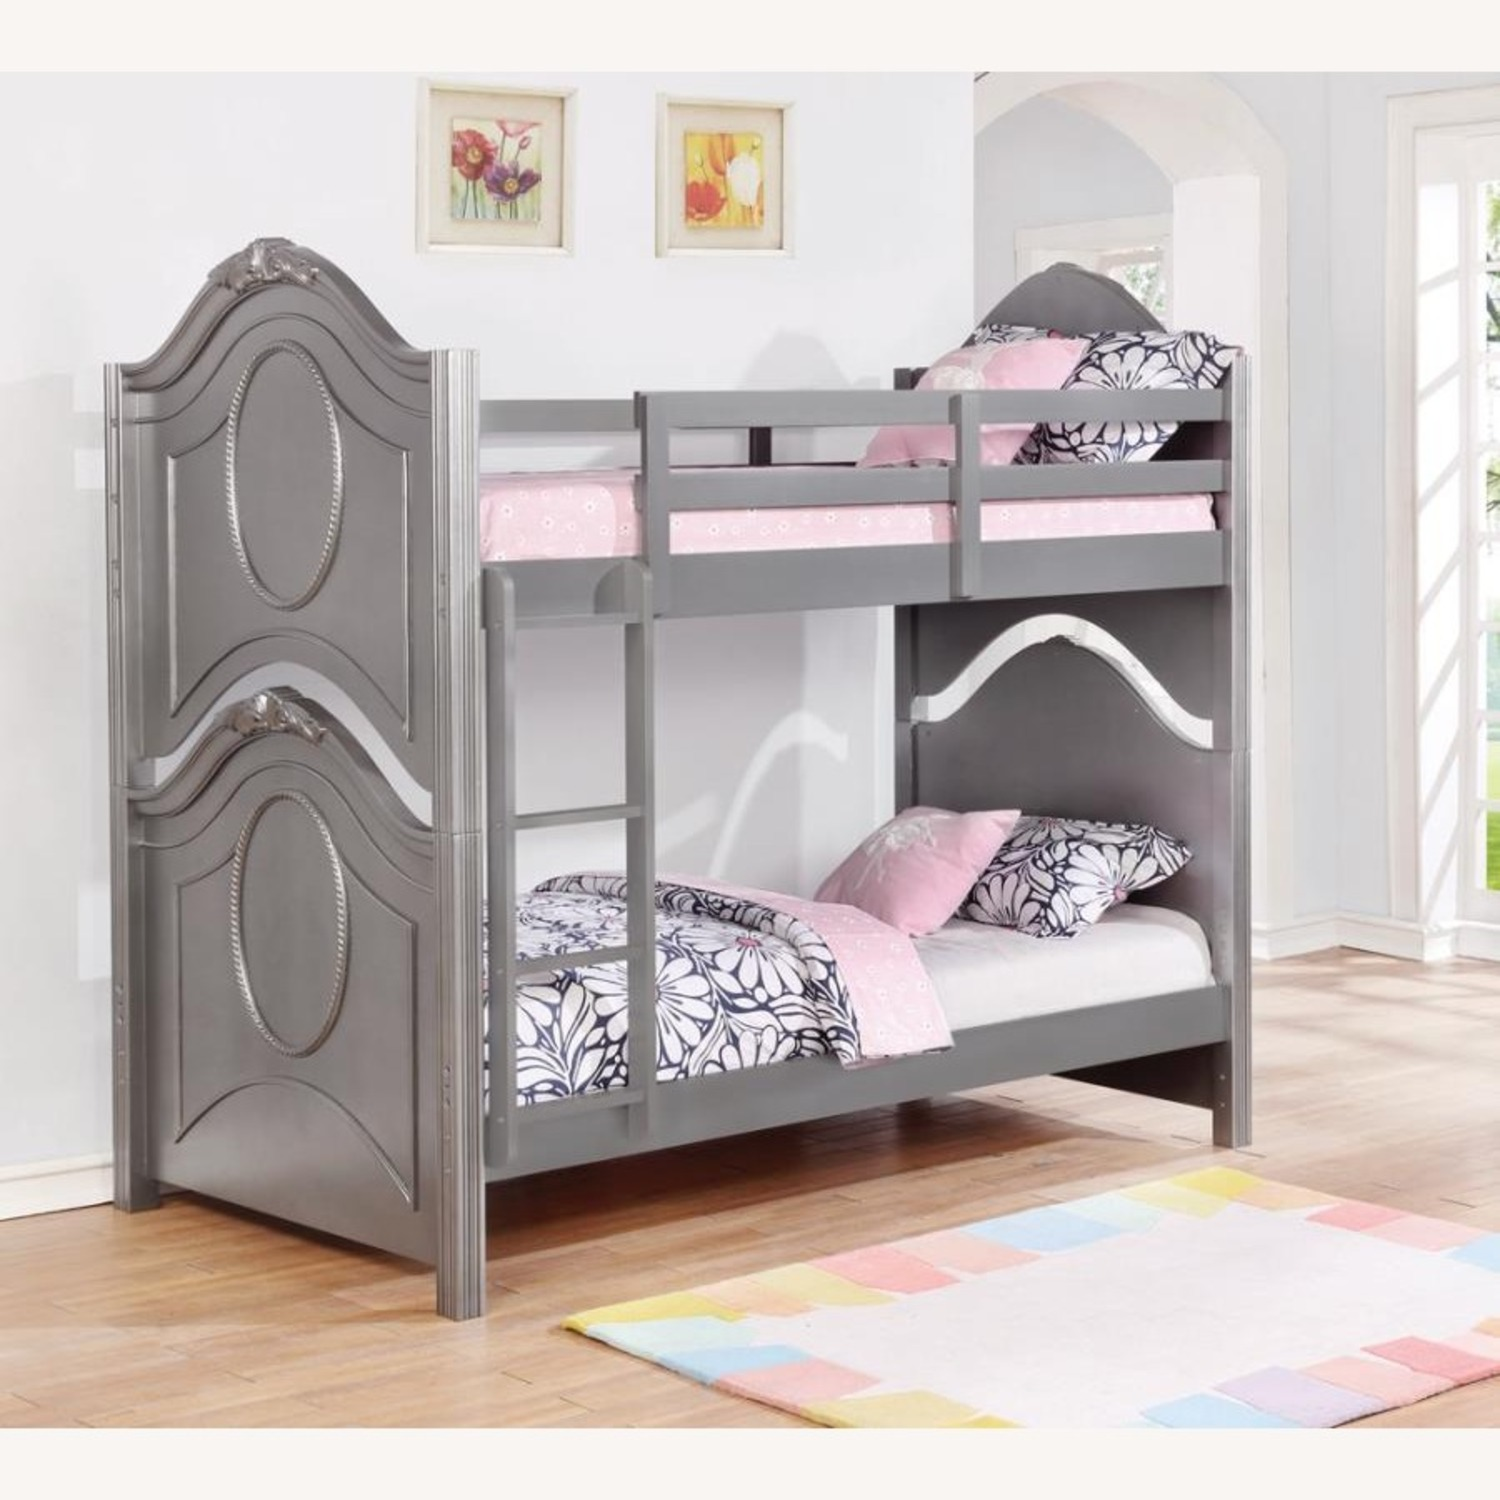 Twin Over Twin Bunk Bed In Metallic Pewter Finish - image-3